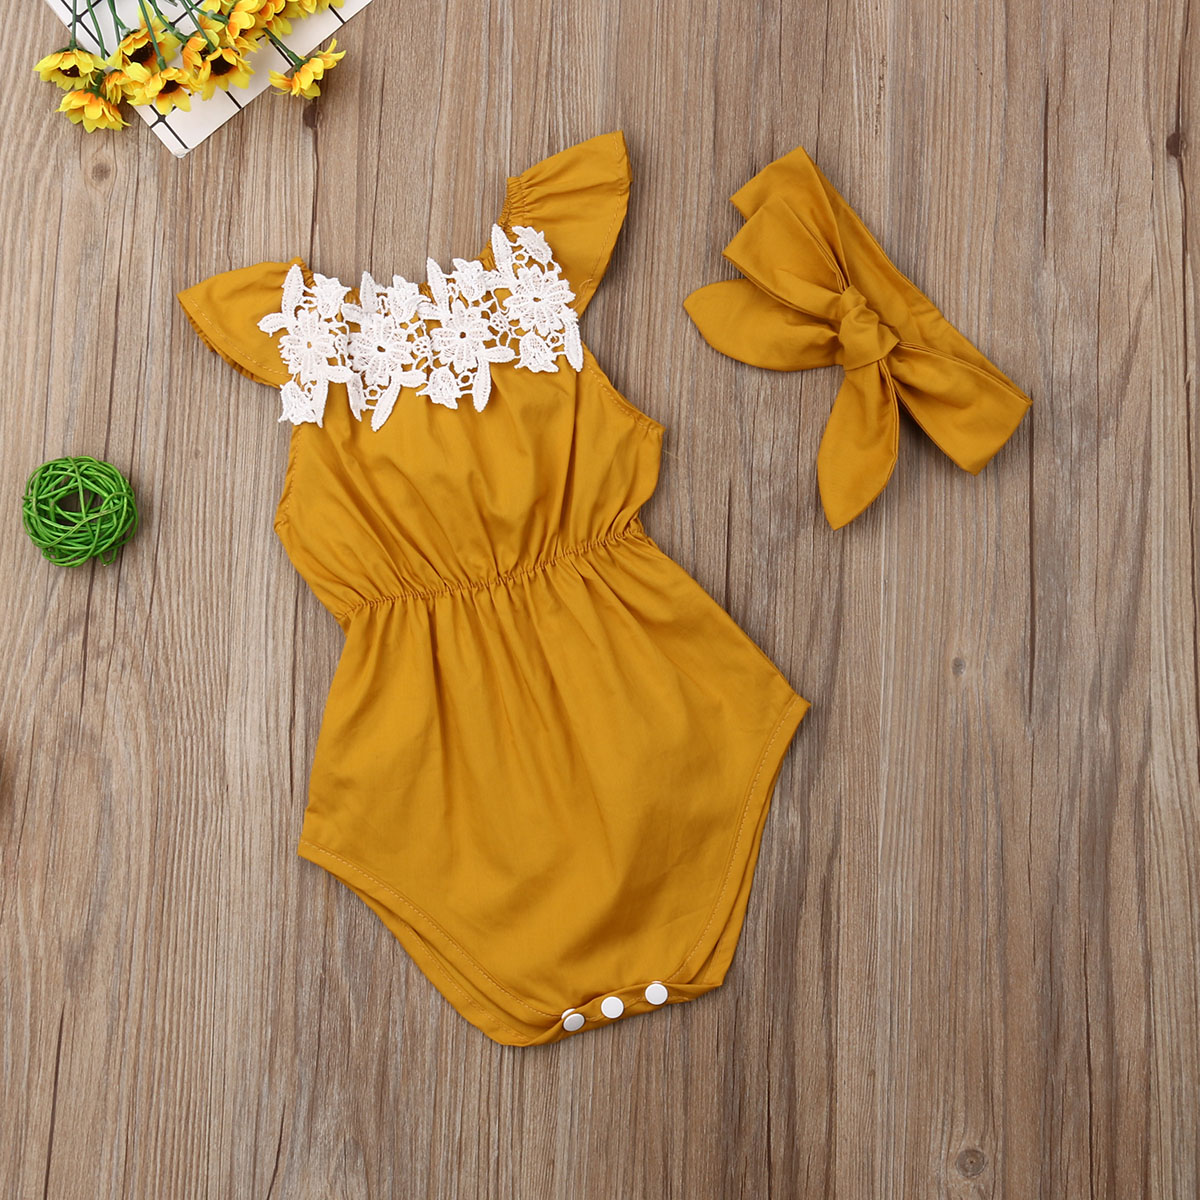 8a9a4cd0ee71 Newborn Baby Girls clothes Flower Sleeveless round neck Bodysuit solid bow  Headband 2PCS kids Toddler cotton lovely Outfits